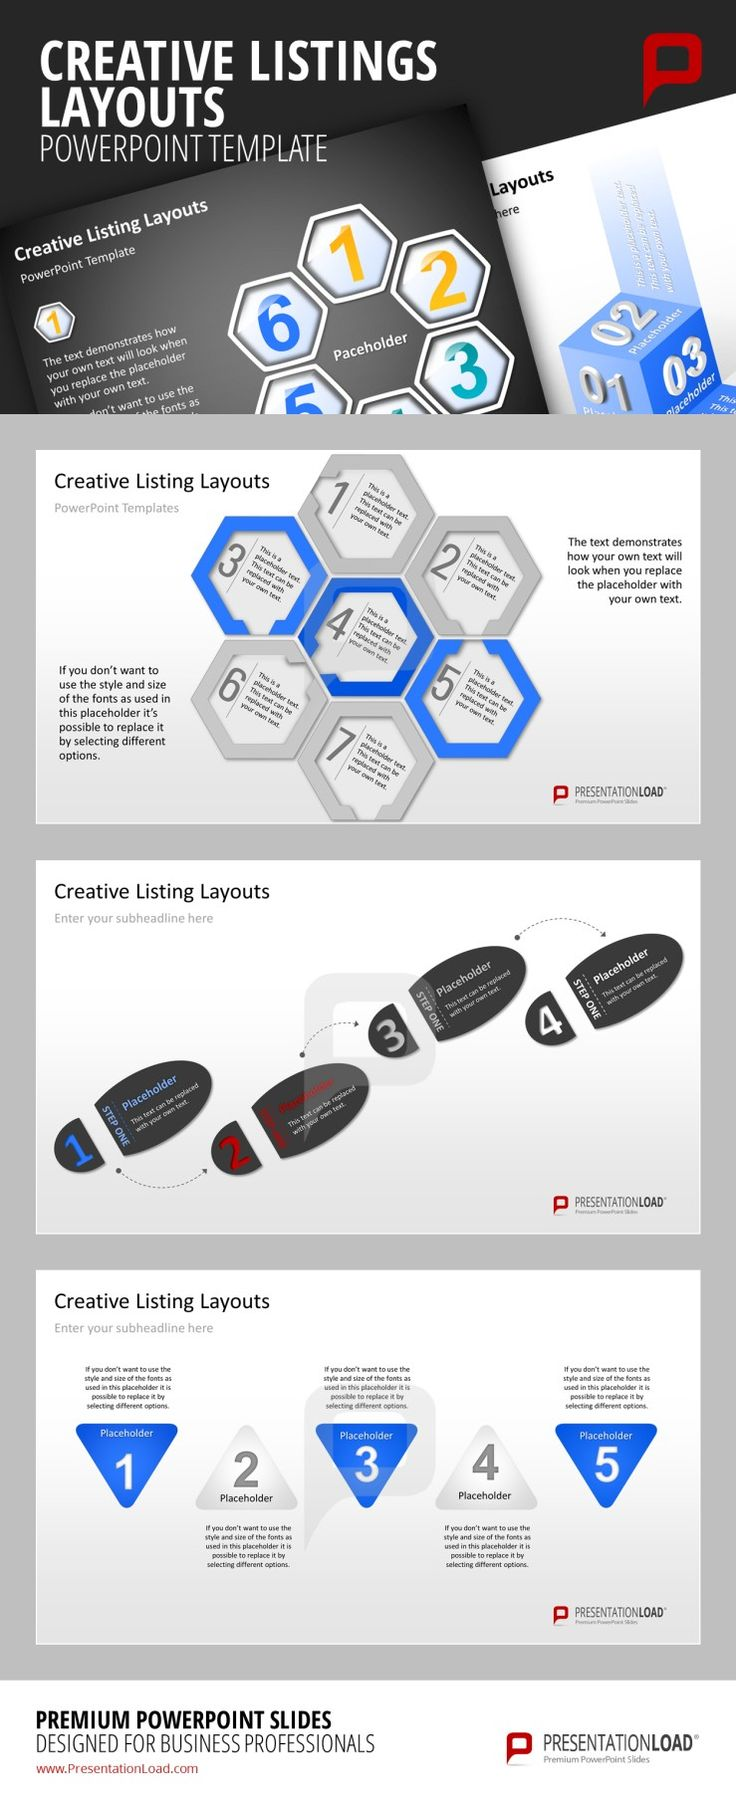 Creative Listings PowerPoint Template Get creative and list your facts & figures, pricings & rates of products or services with the unique graphic elements of our pre-designed Creative Listing Layouts templates.  #presentationload www.presentationl...